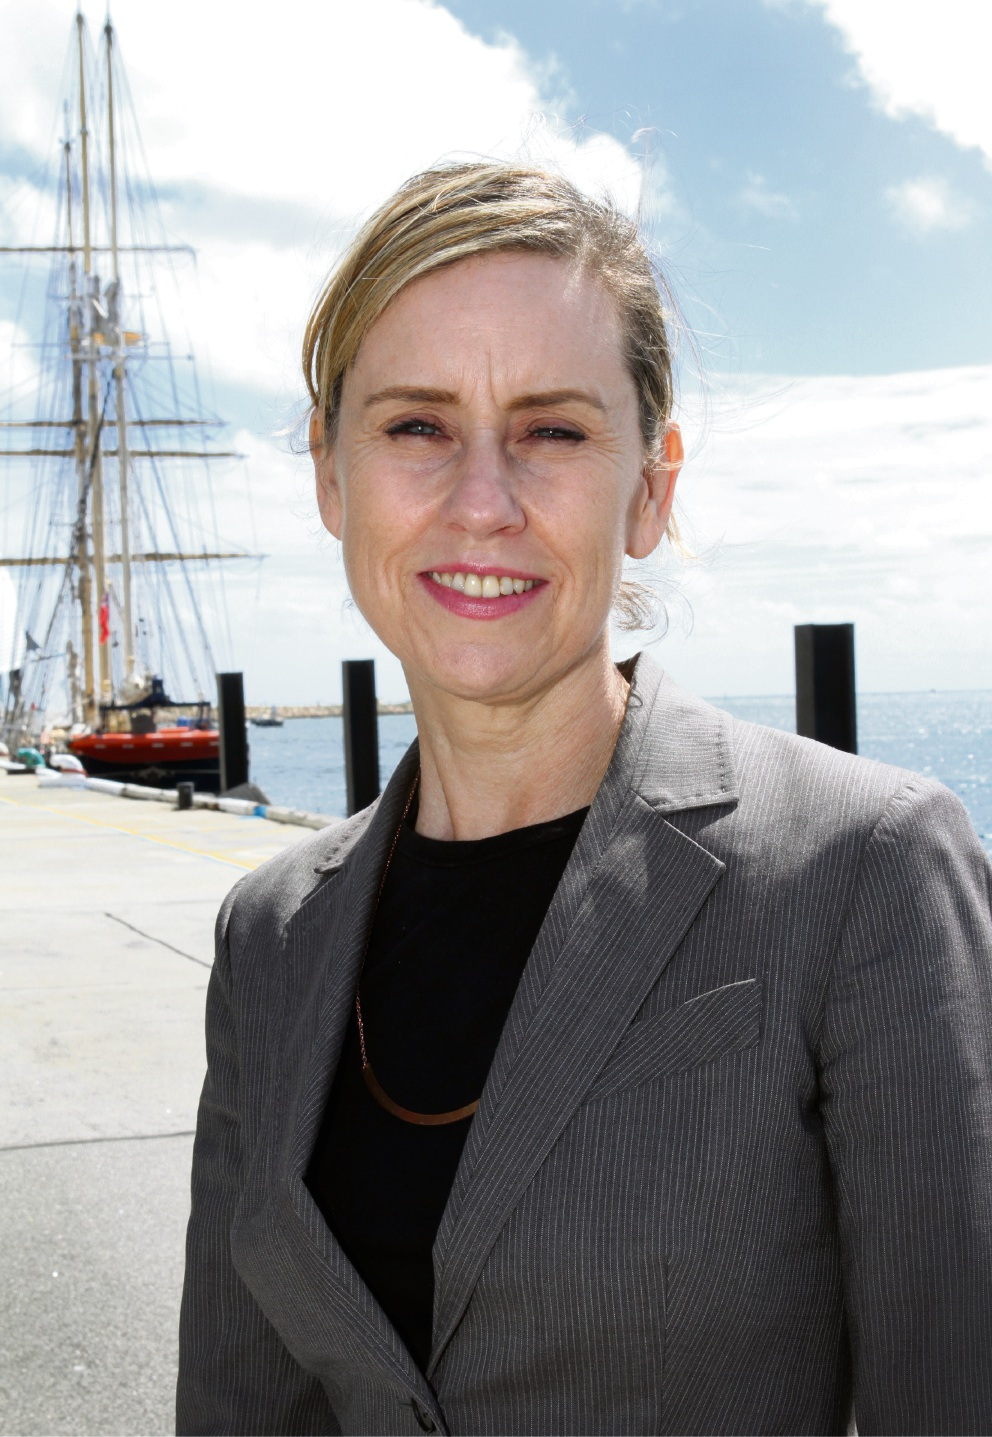 Child Protection and Prevention of Family and Domestic Violence Minister Simone McGurk. Picture: Robin Kornet